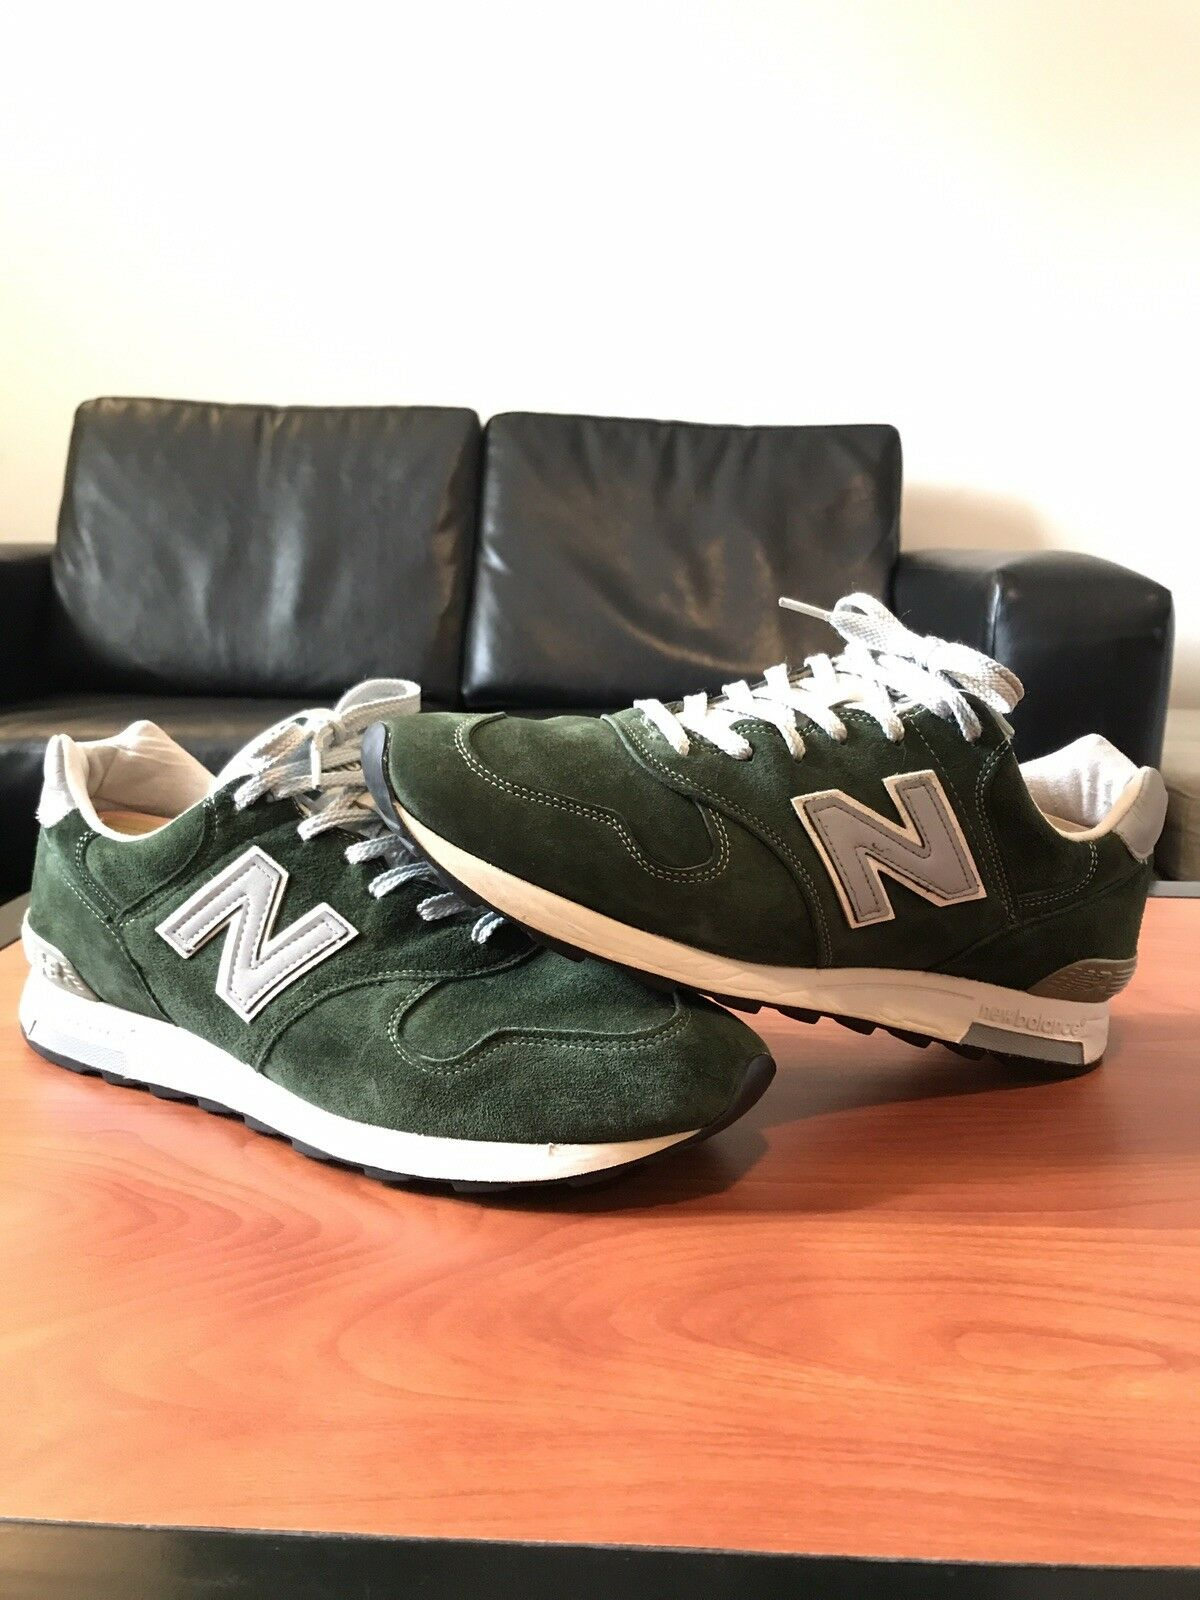 aabda39e36 New Balance JCrew M1400MG Pine Forest Green Size 12 Made In USA Kith  Concepts